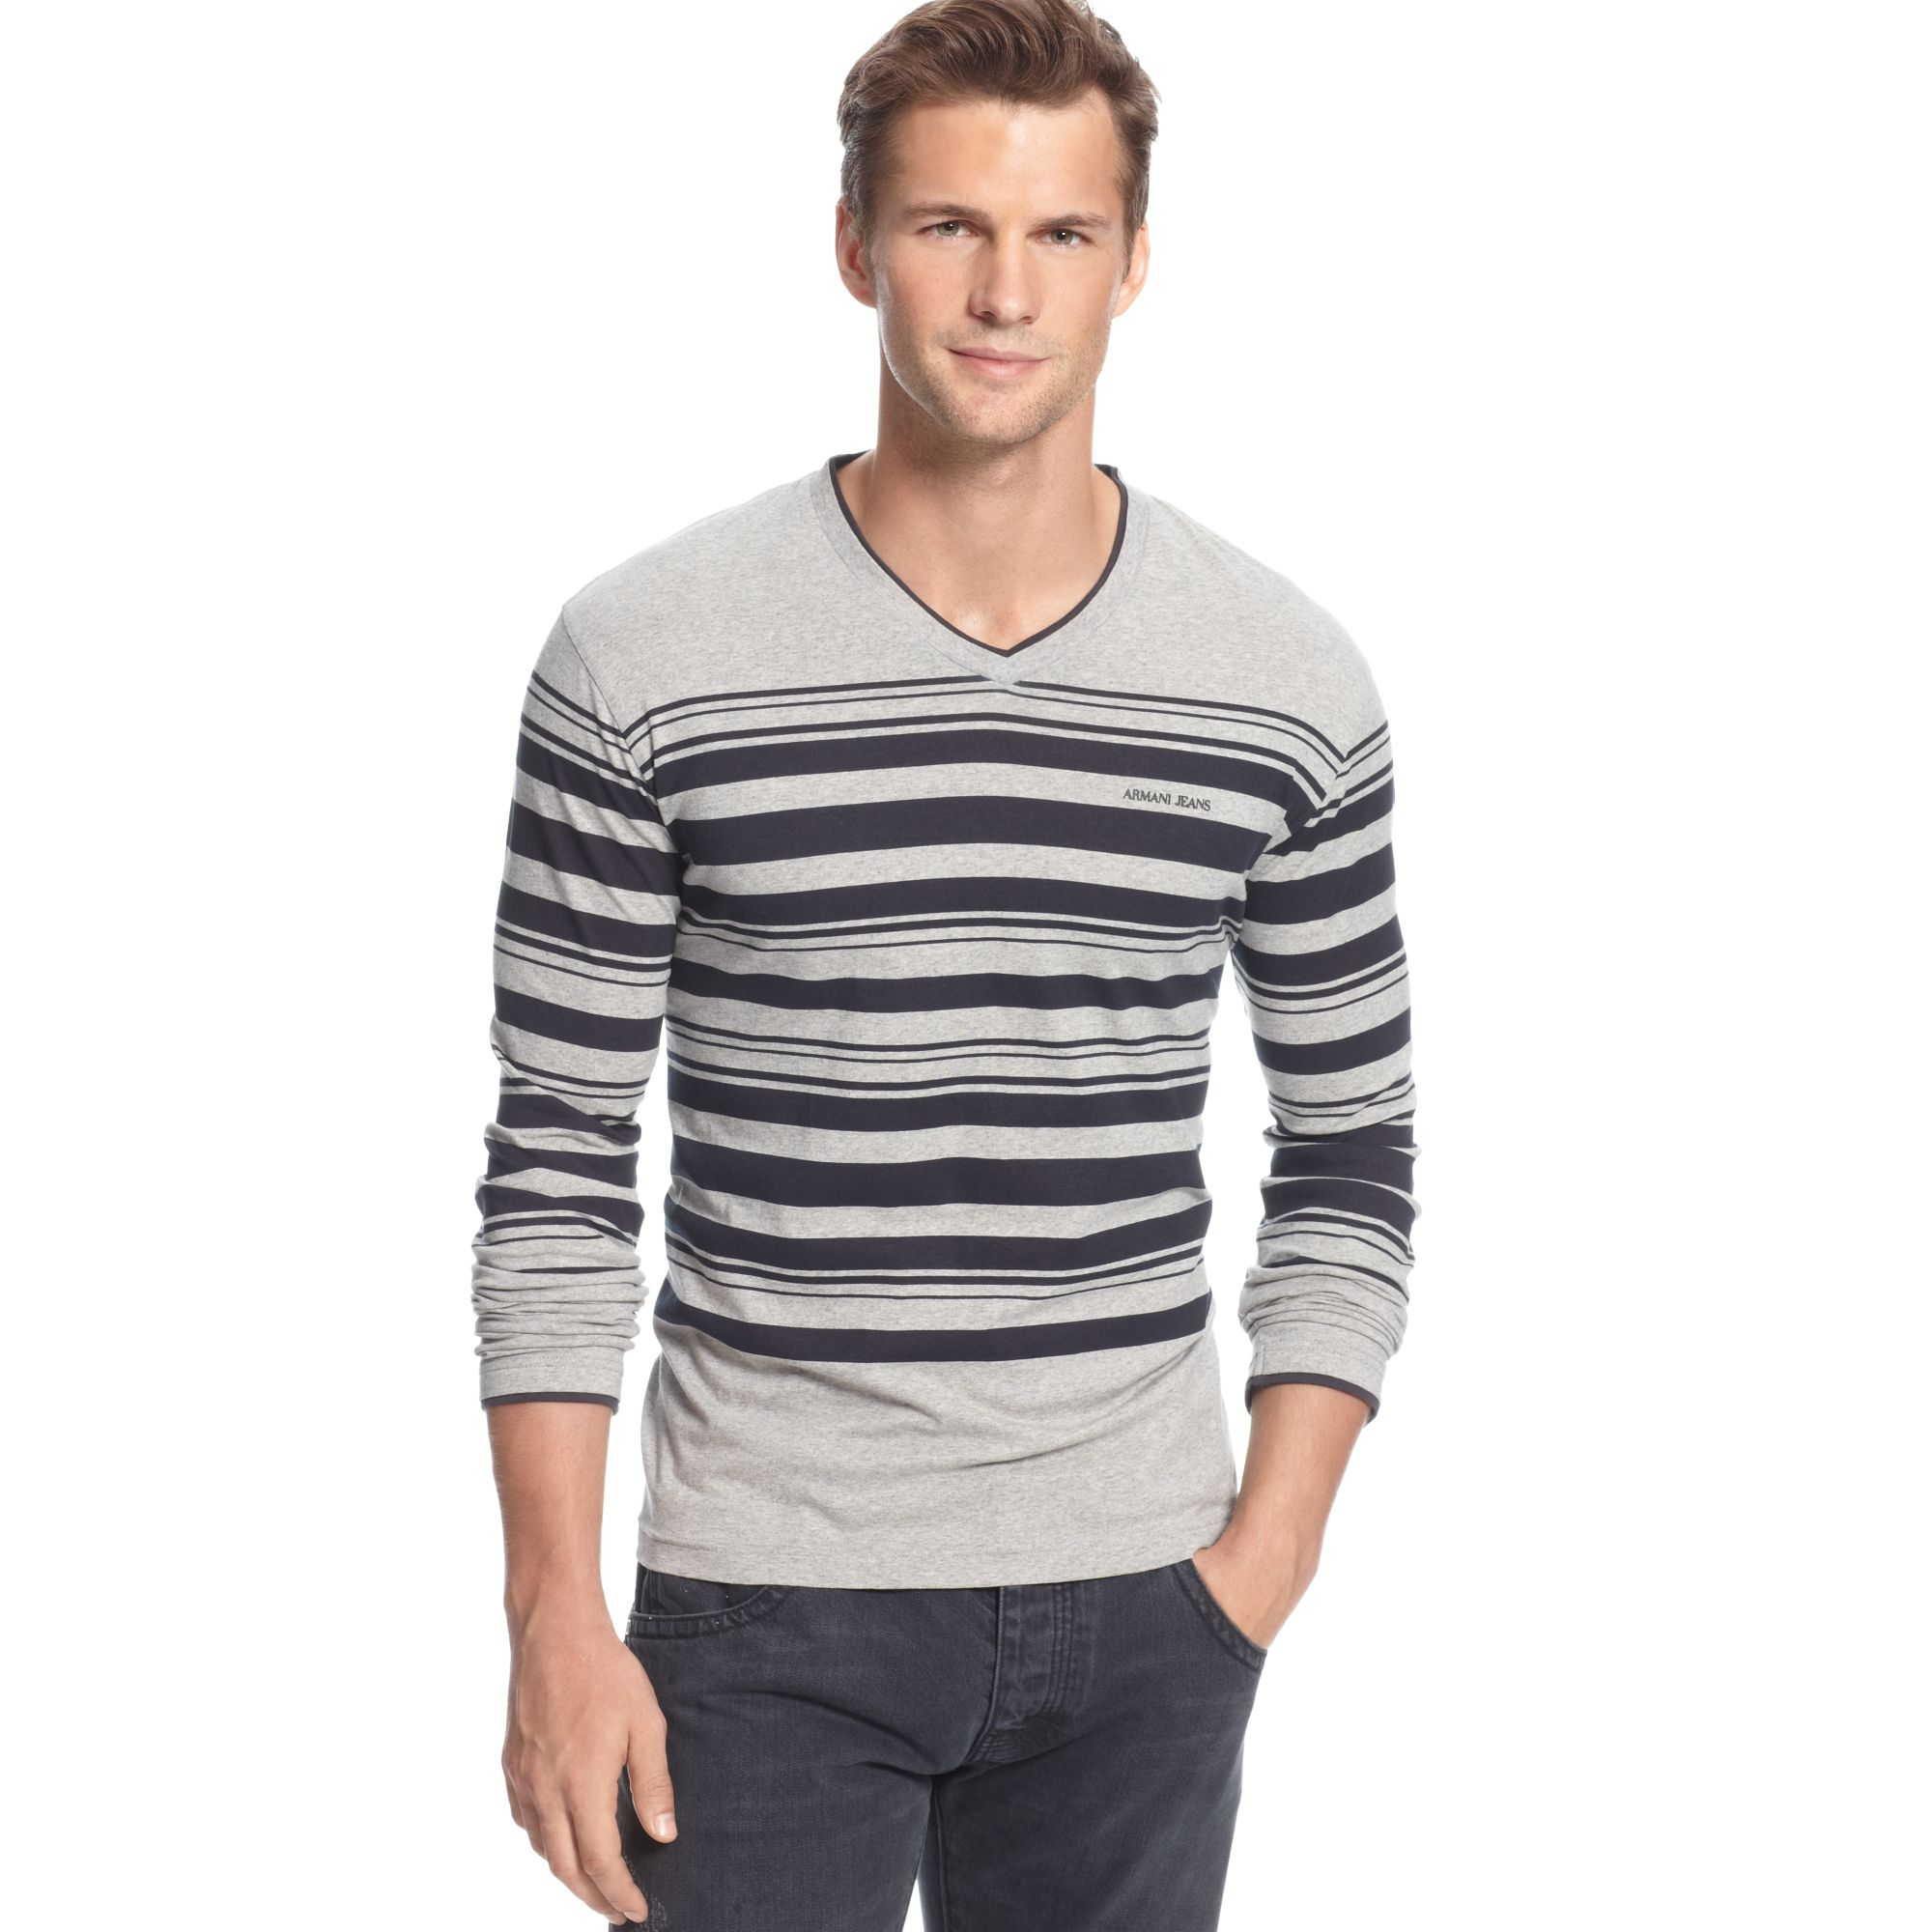 armani jeans striped vneck extra slim fit in gray for men grey black lyst. Black Bedroom Furniture Sets. Home Design Ideas